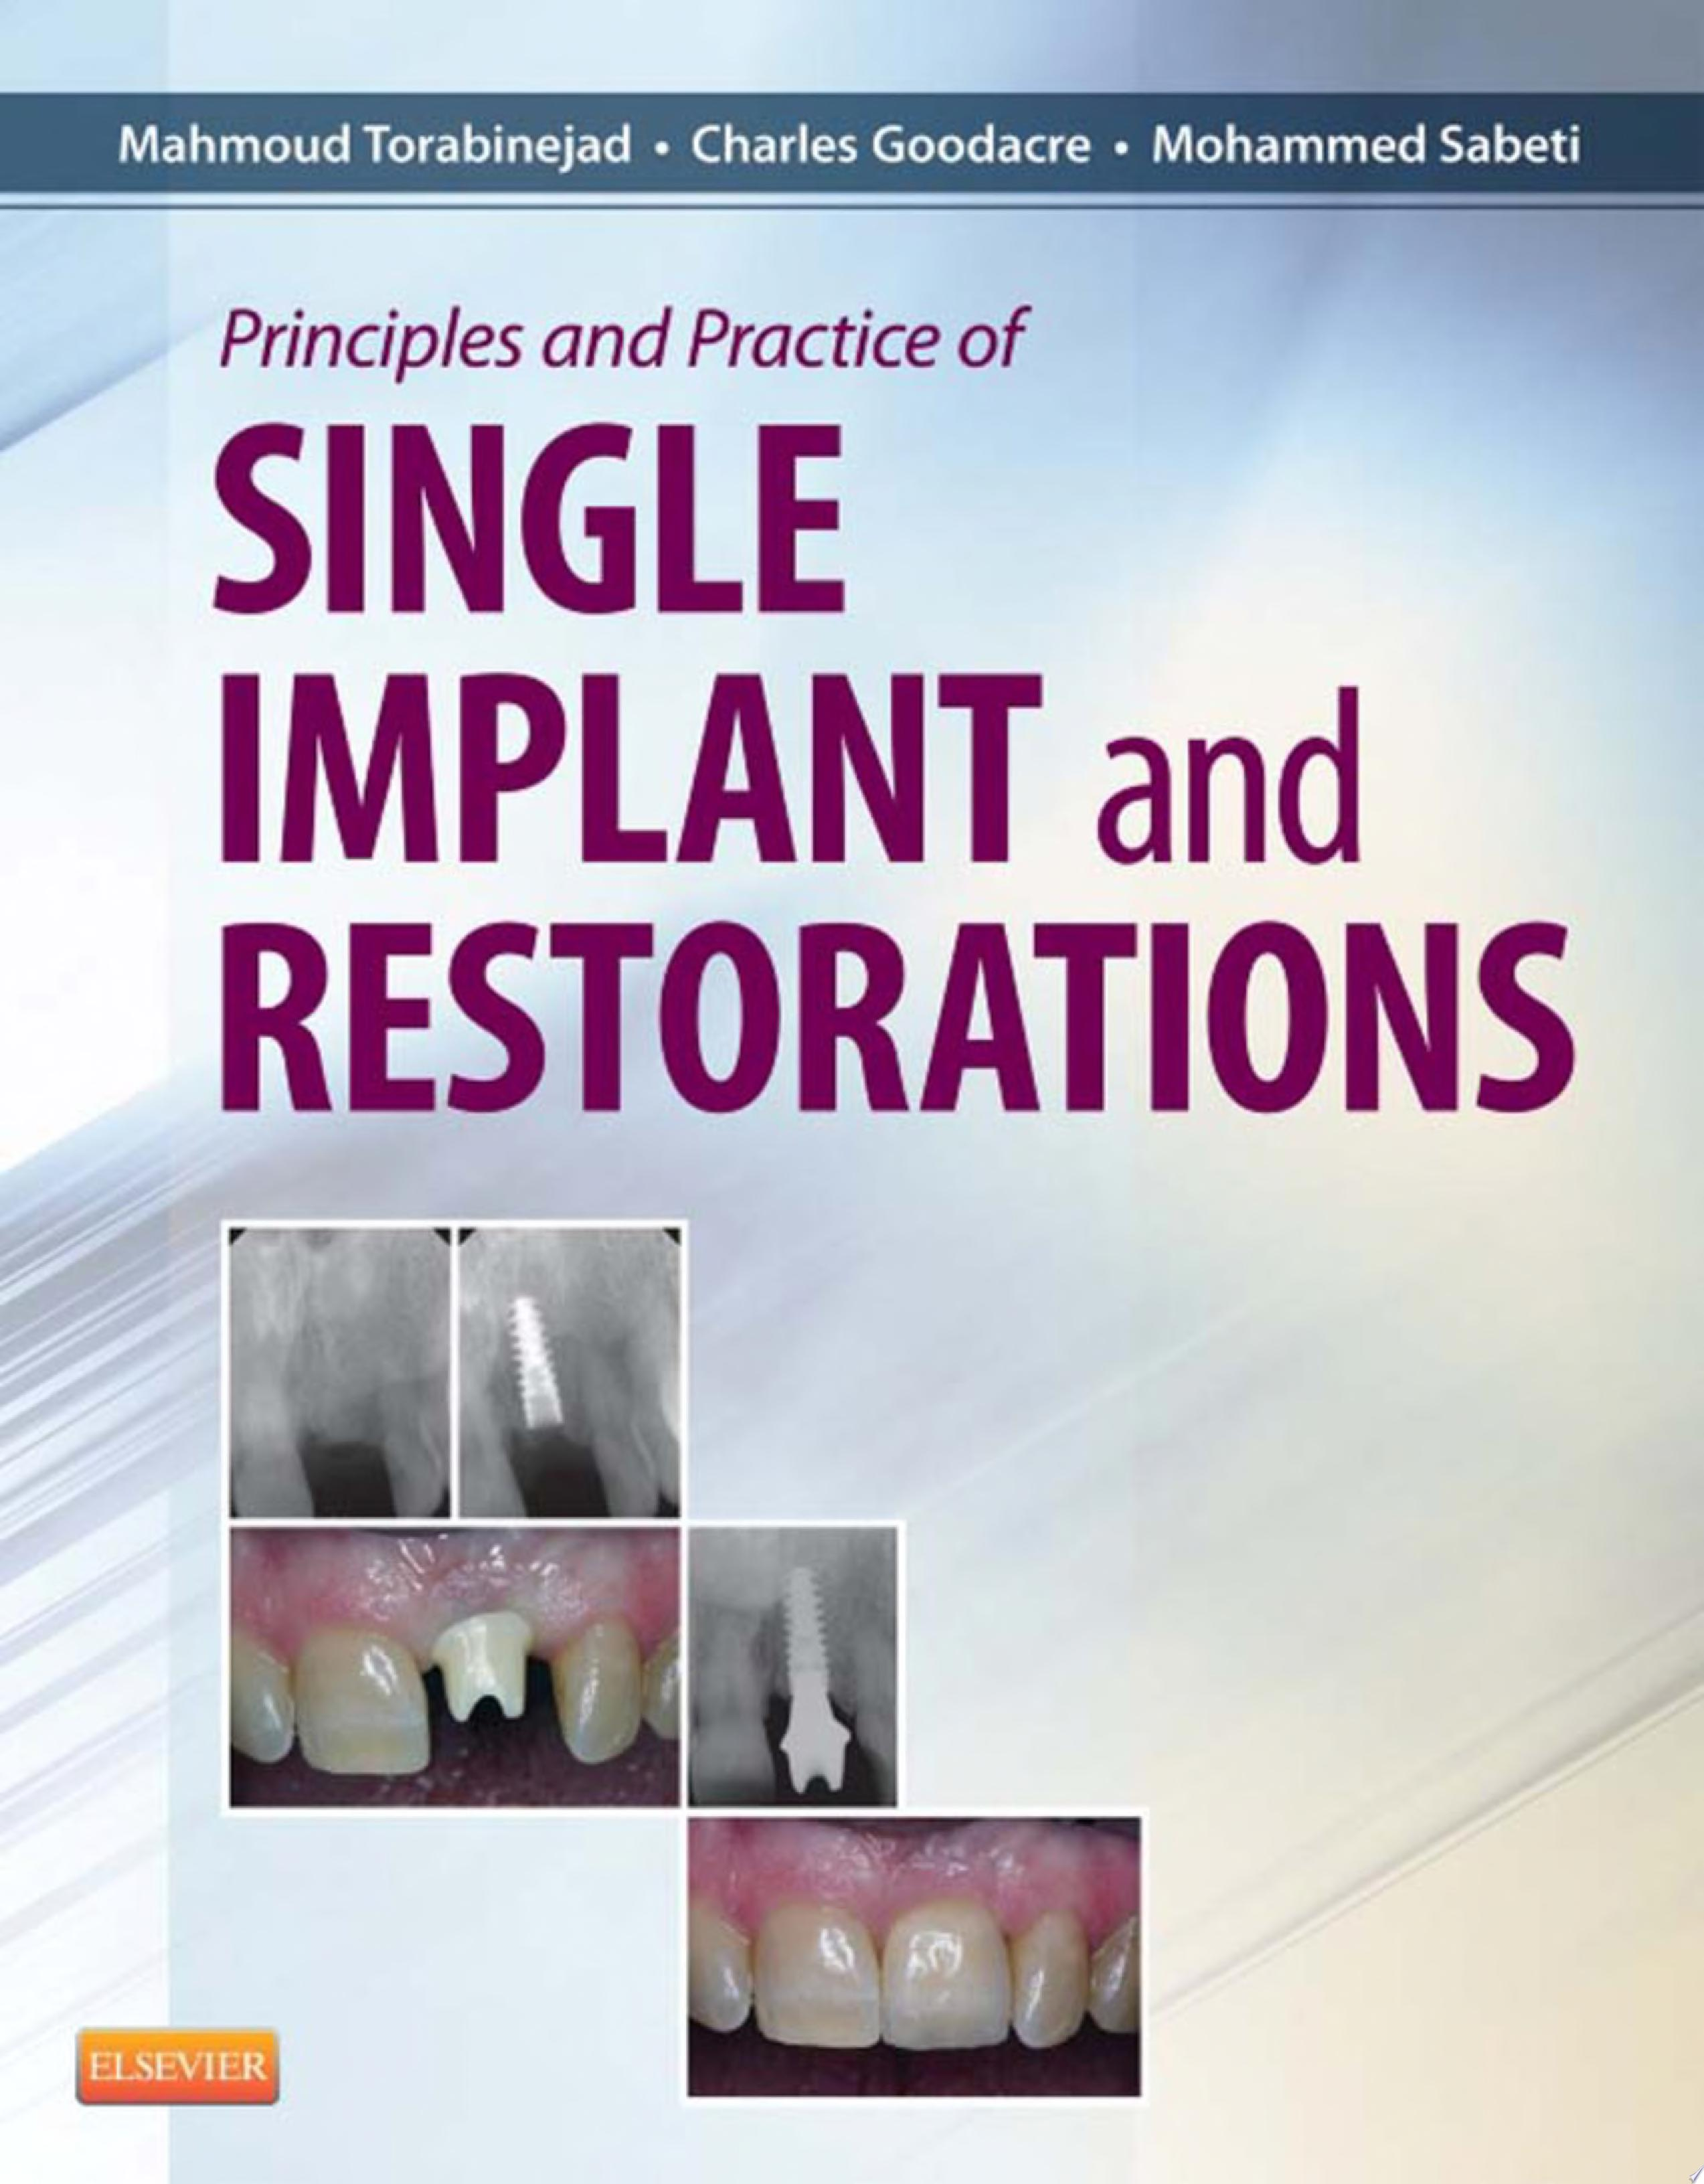 Principles and Practice of Single Implant and Restoration